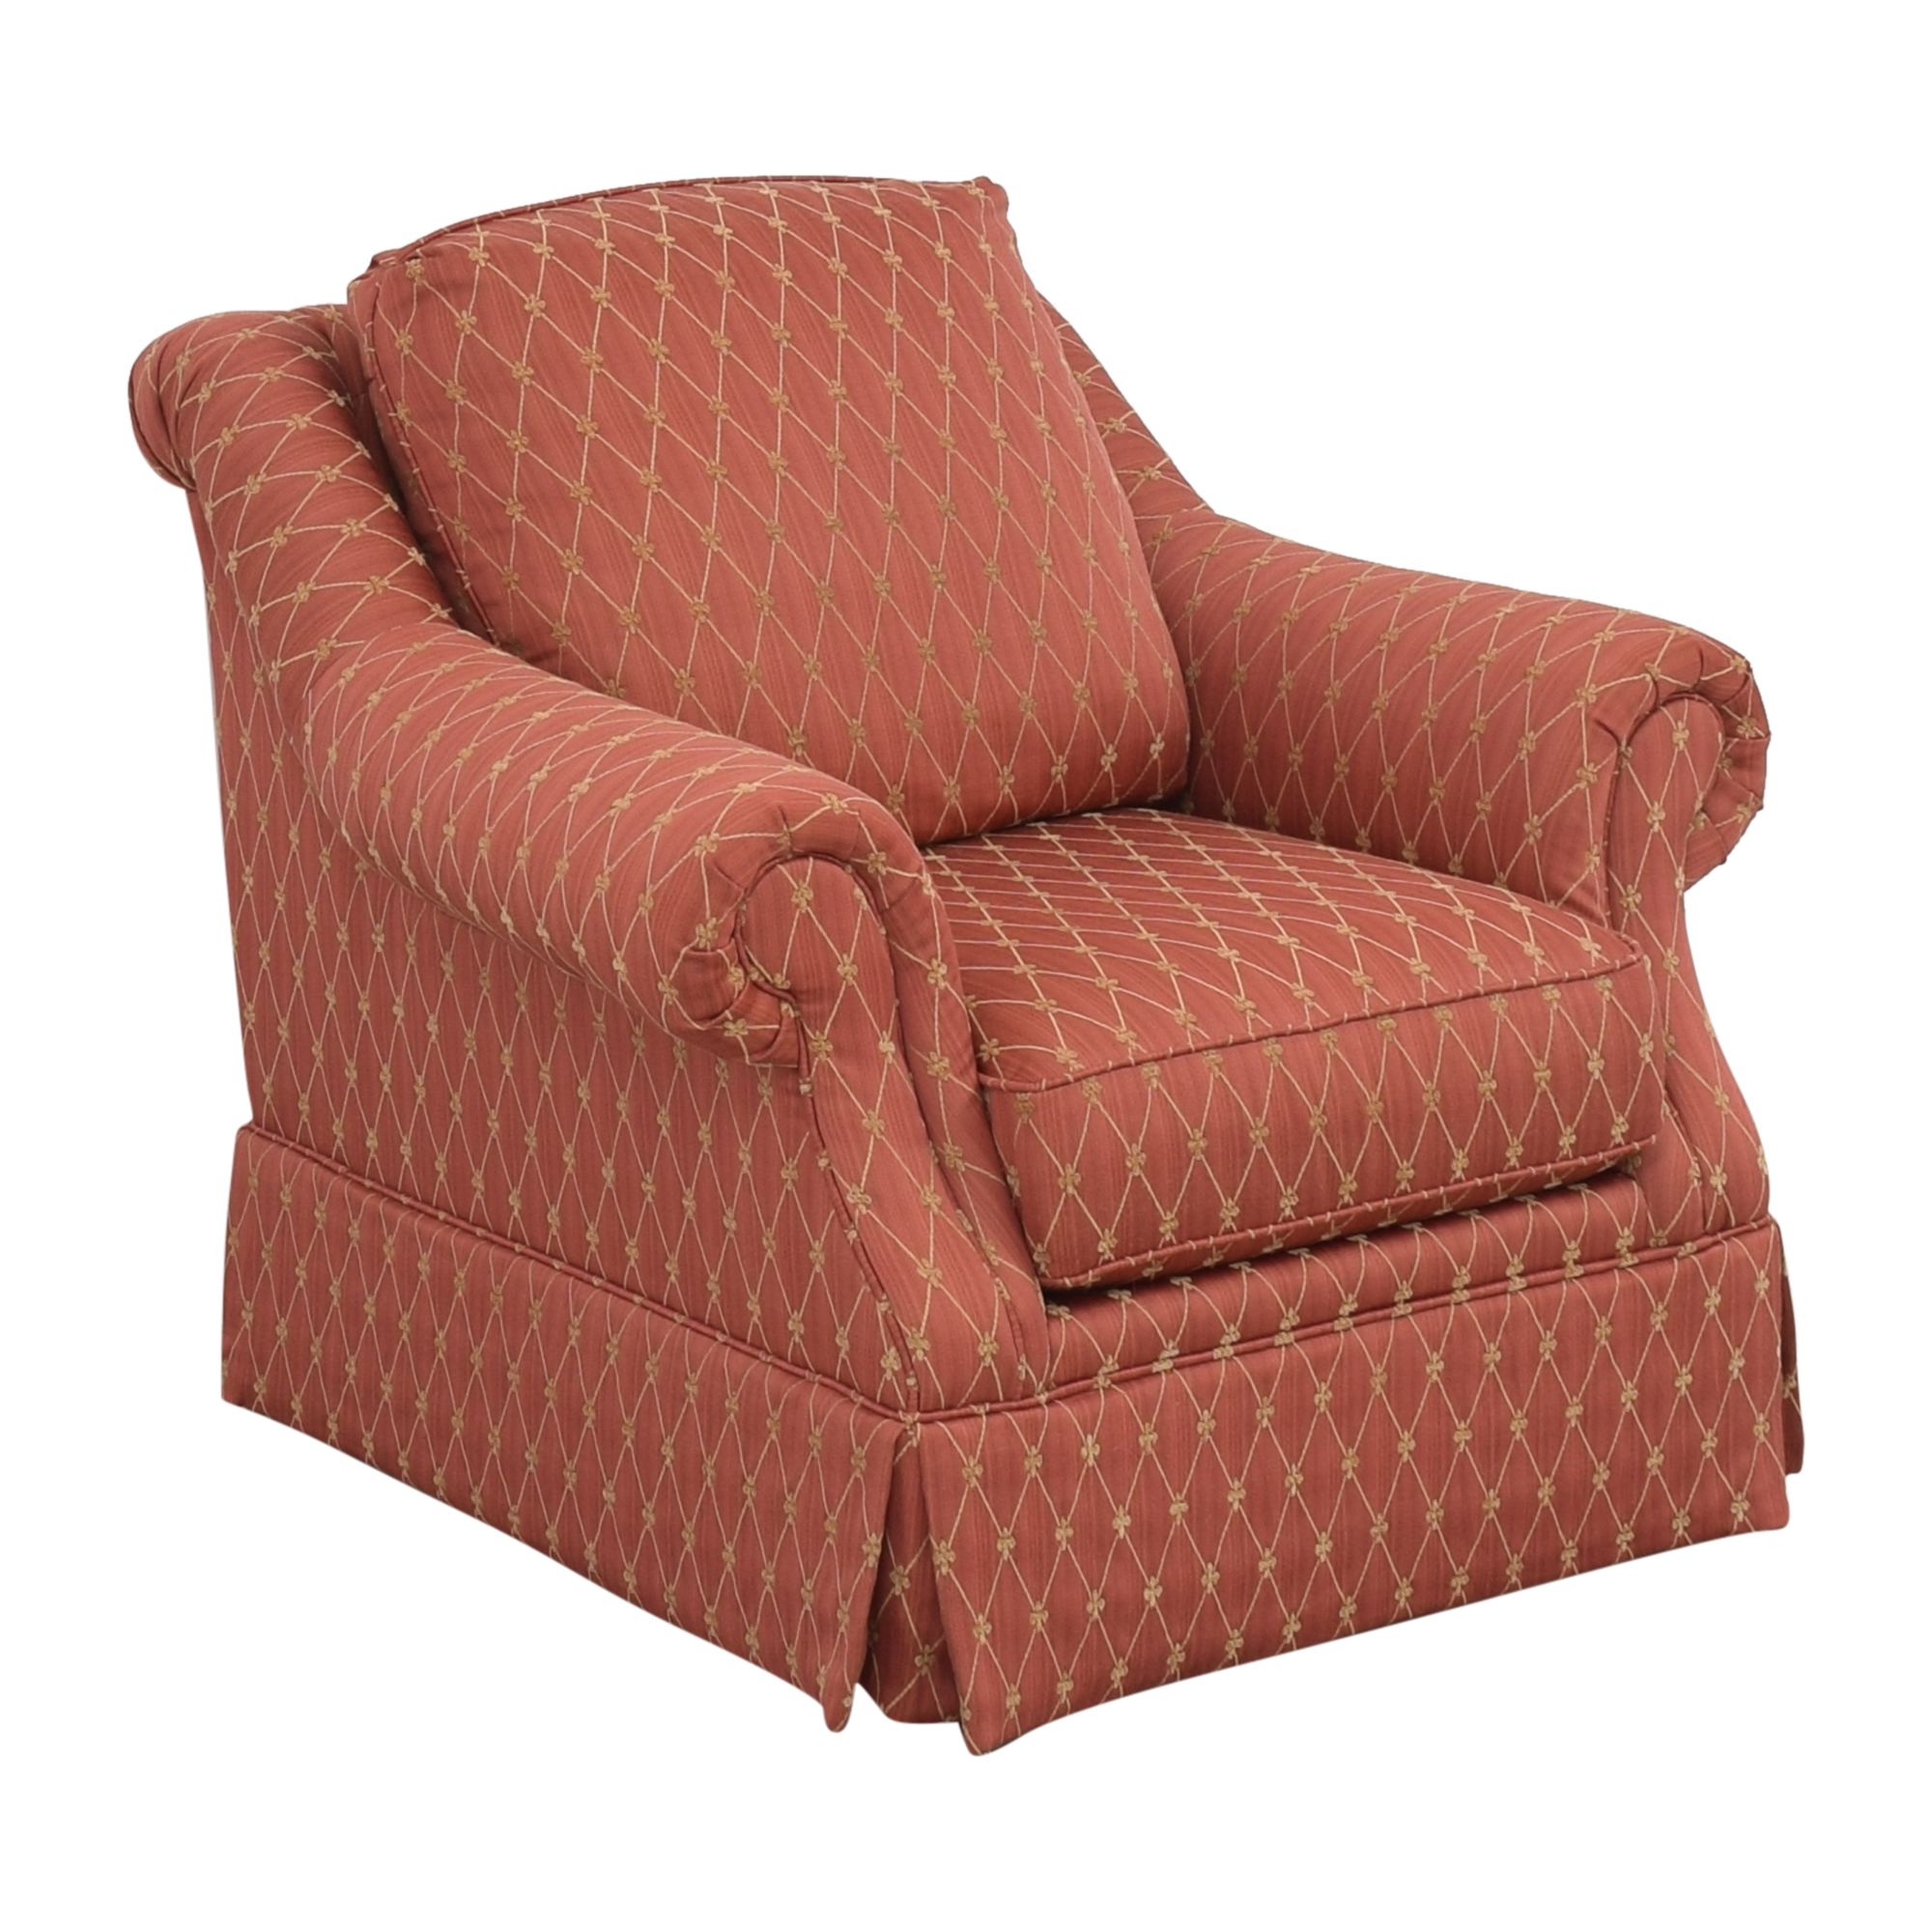 Clayton Marcus Clayton Marcus Accent Chair nyc